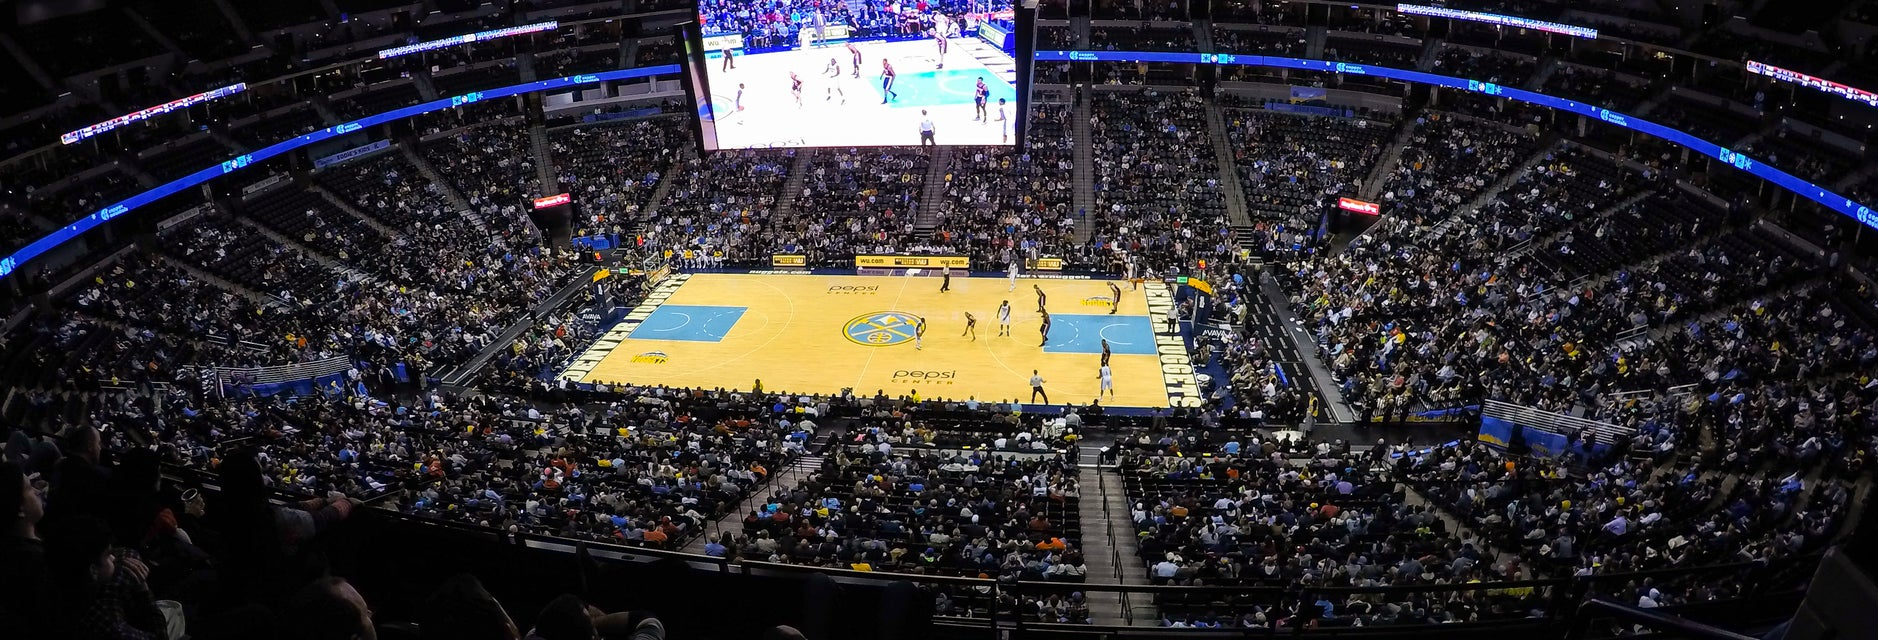 Seat view from Lower Center Balcony